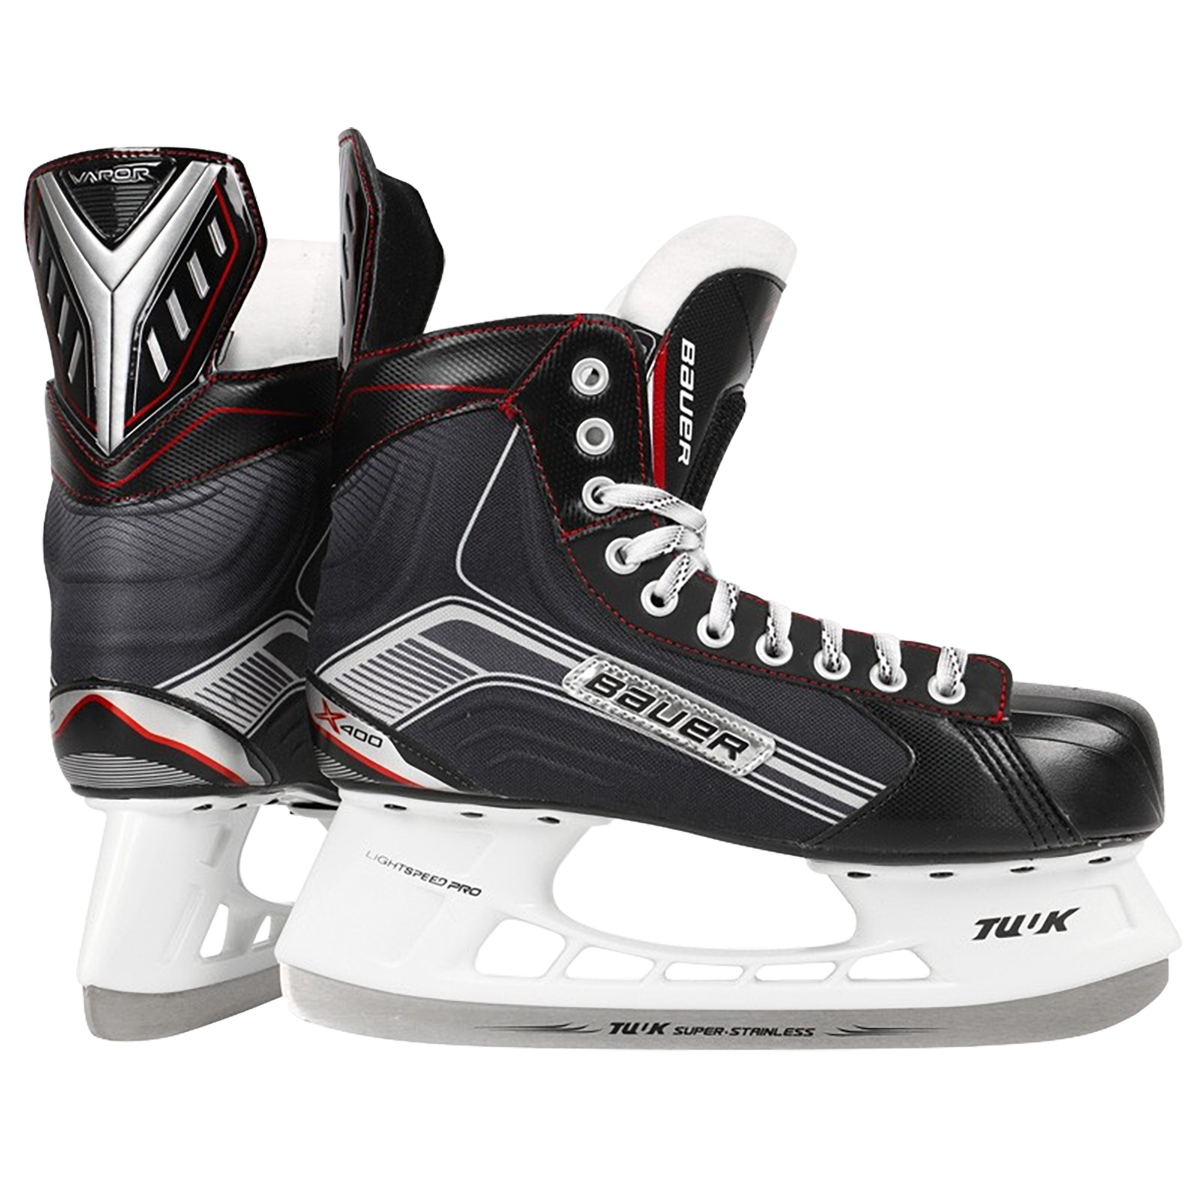 Leaked Image Of The Top Secret Limited Release Bauer Vapor Advanced Series Stick, Weighing In